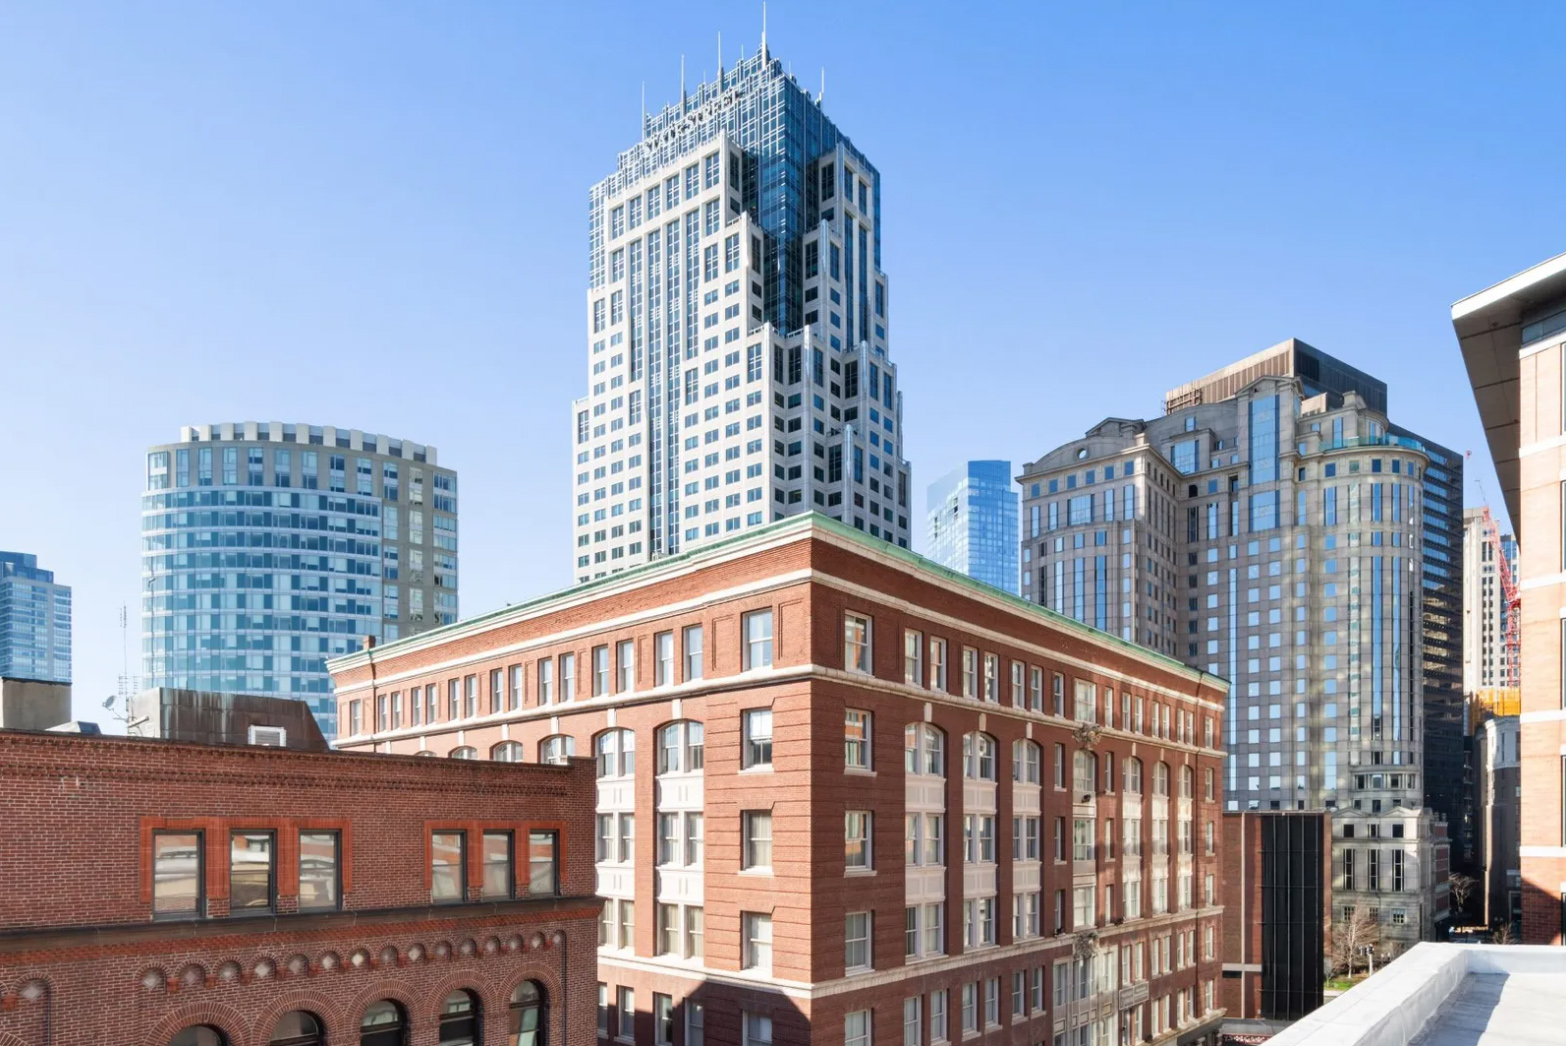 The leather district features redbrick volumes that date from the 1800s to early 19th century, many of which have been converted for new roles as mixed use and residential properties.